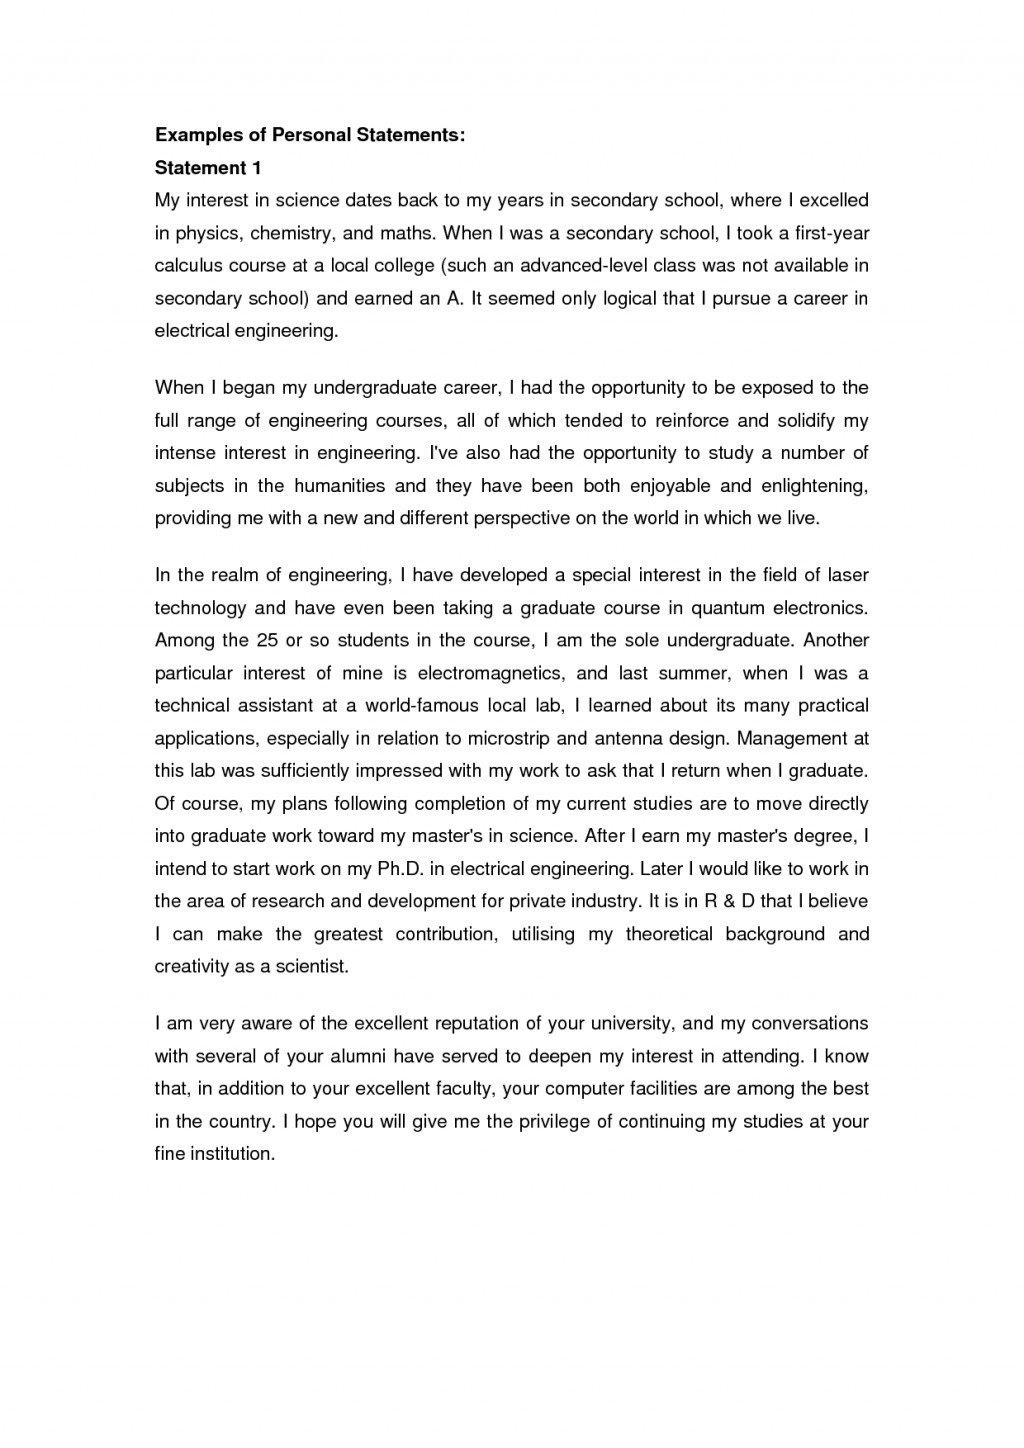 004 Examples Of Personal Essays Essay Stunning For Scholarships High School Pdf Example About Highschool Life Large